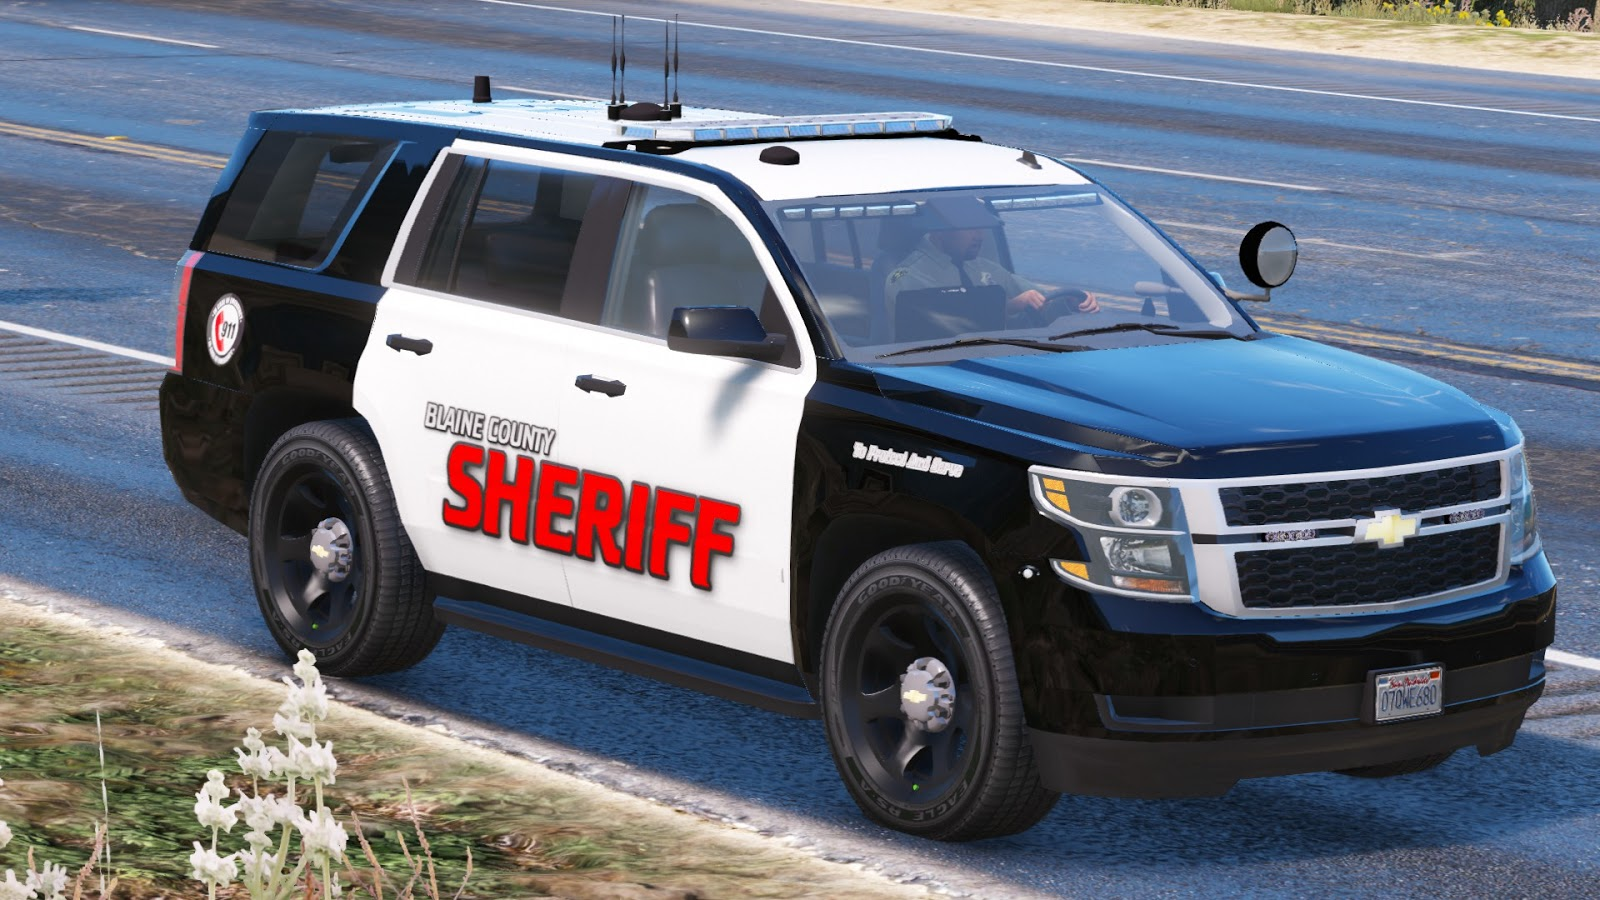 2015 ELS Chevy Tahoe By POLICESCO | AcePilot2k7